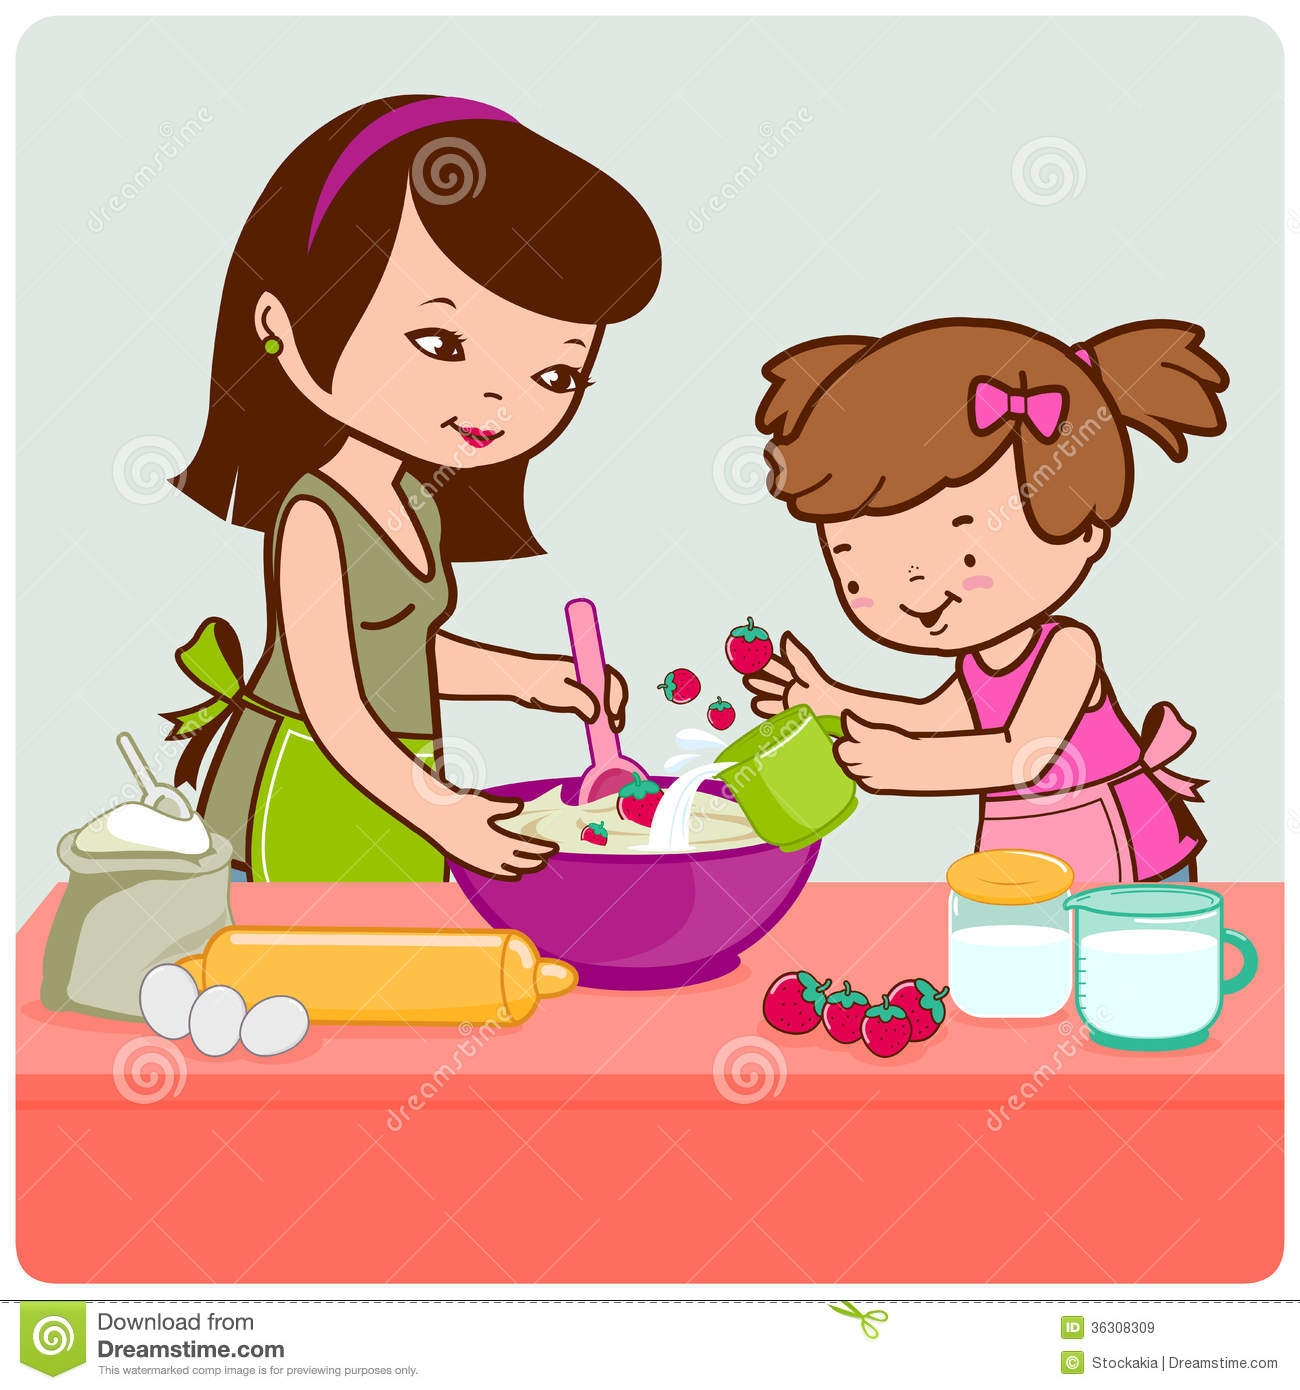 Use Of Water In Cooking Clipart.